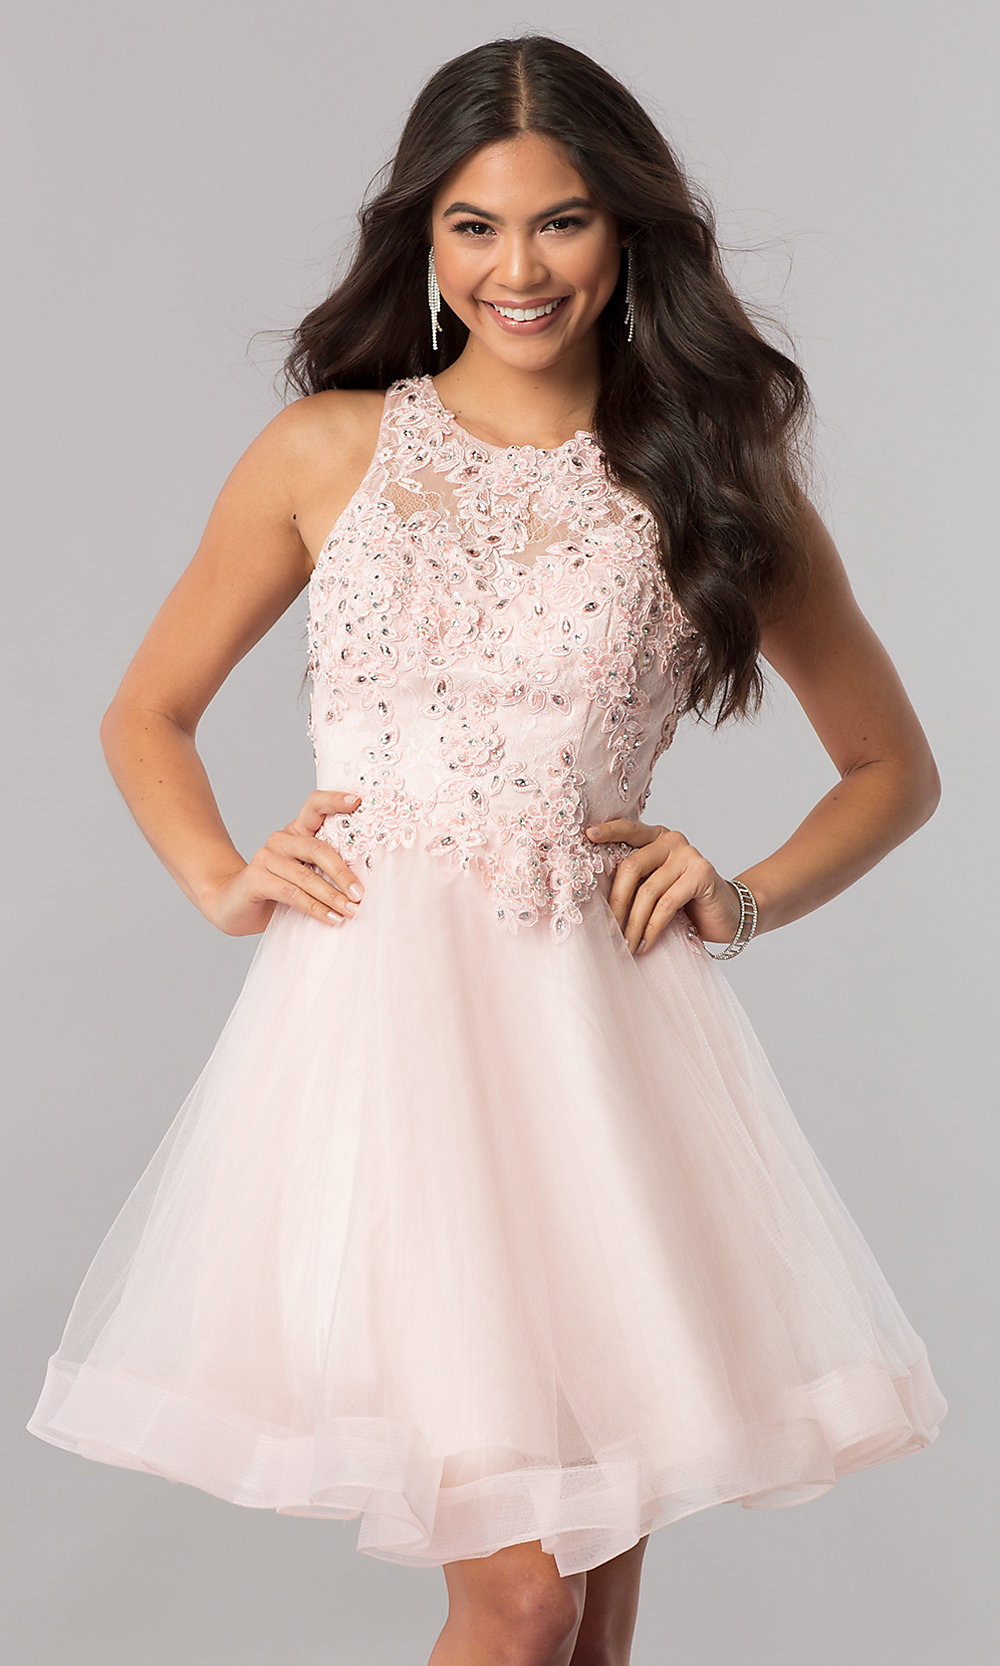 59131301d9a Tulle Short Homecoming Dress with Beaded Lace